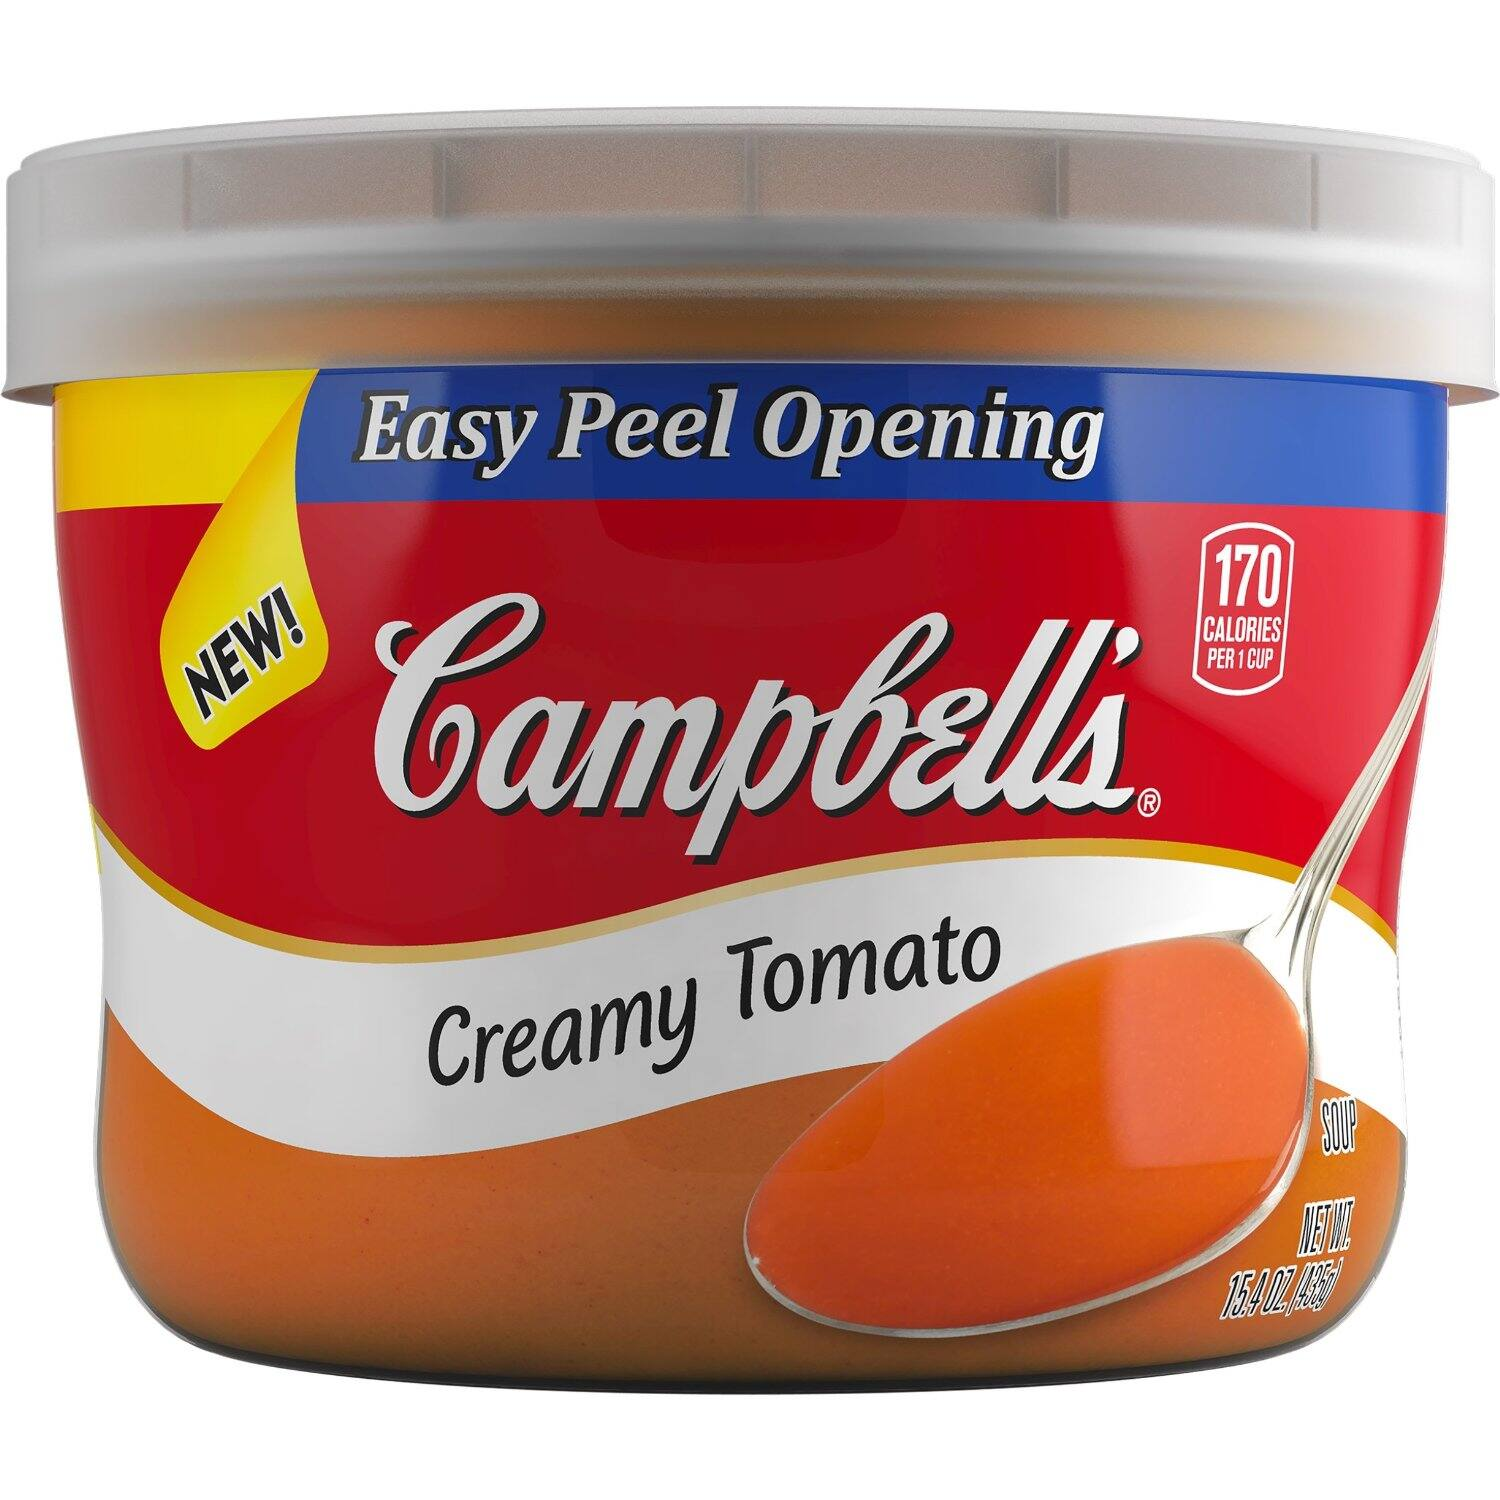 Prime Members: 8-Pack of Campbell's Soup Bowls  from $8.75 + Free Shipping